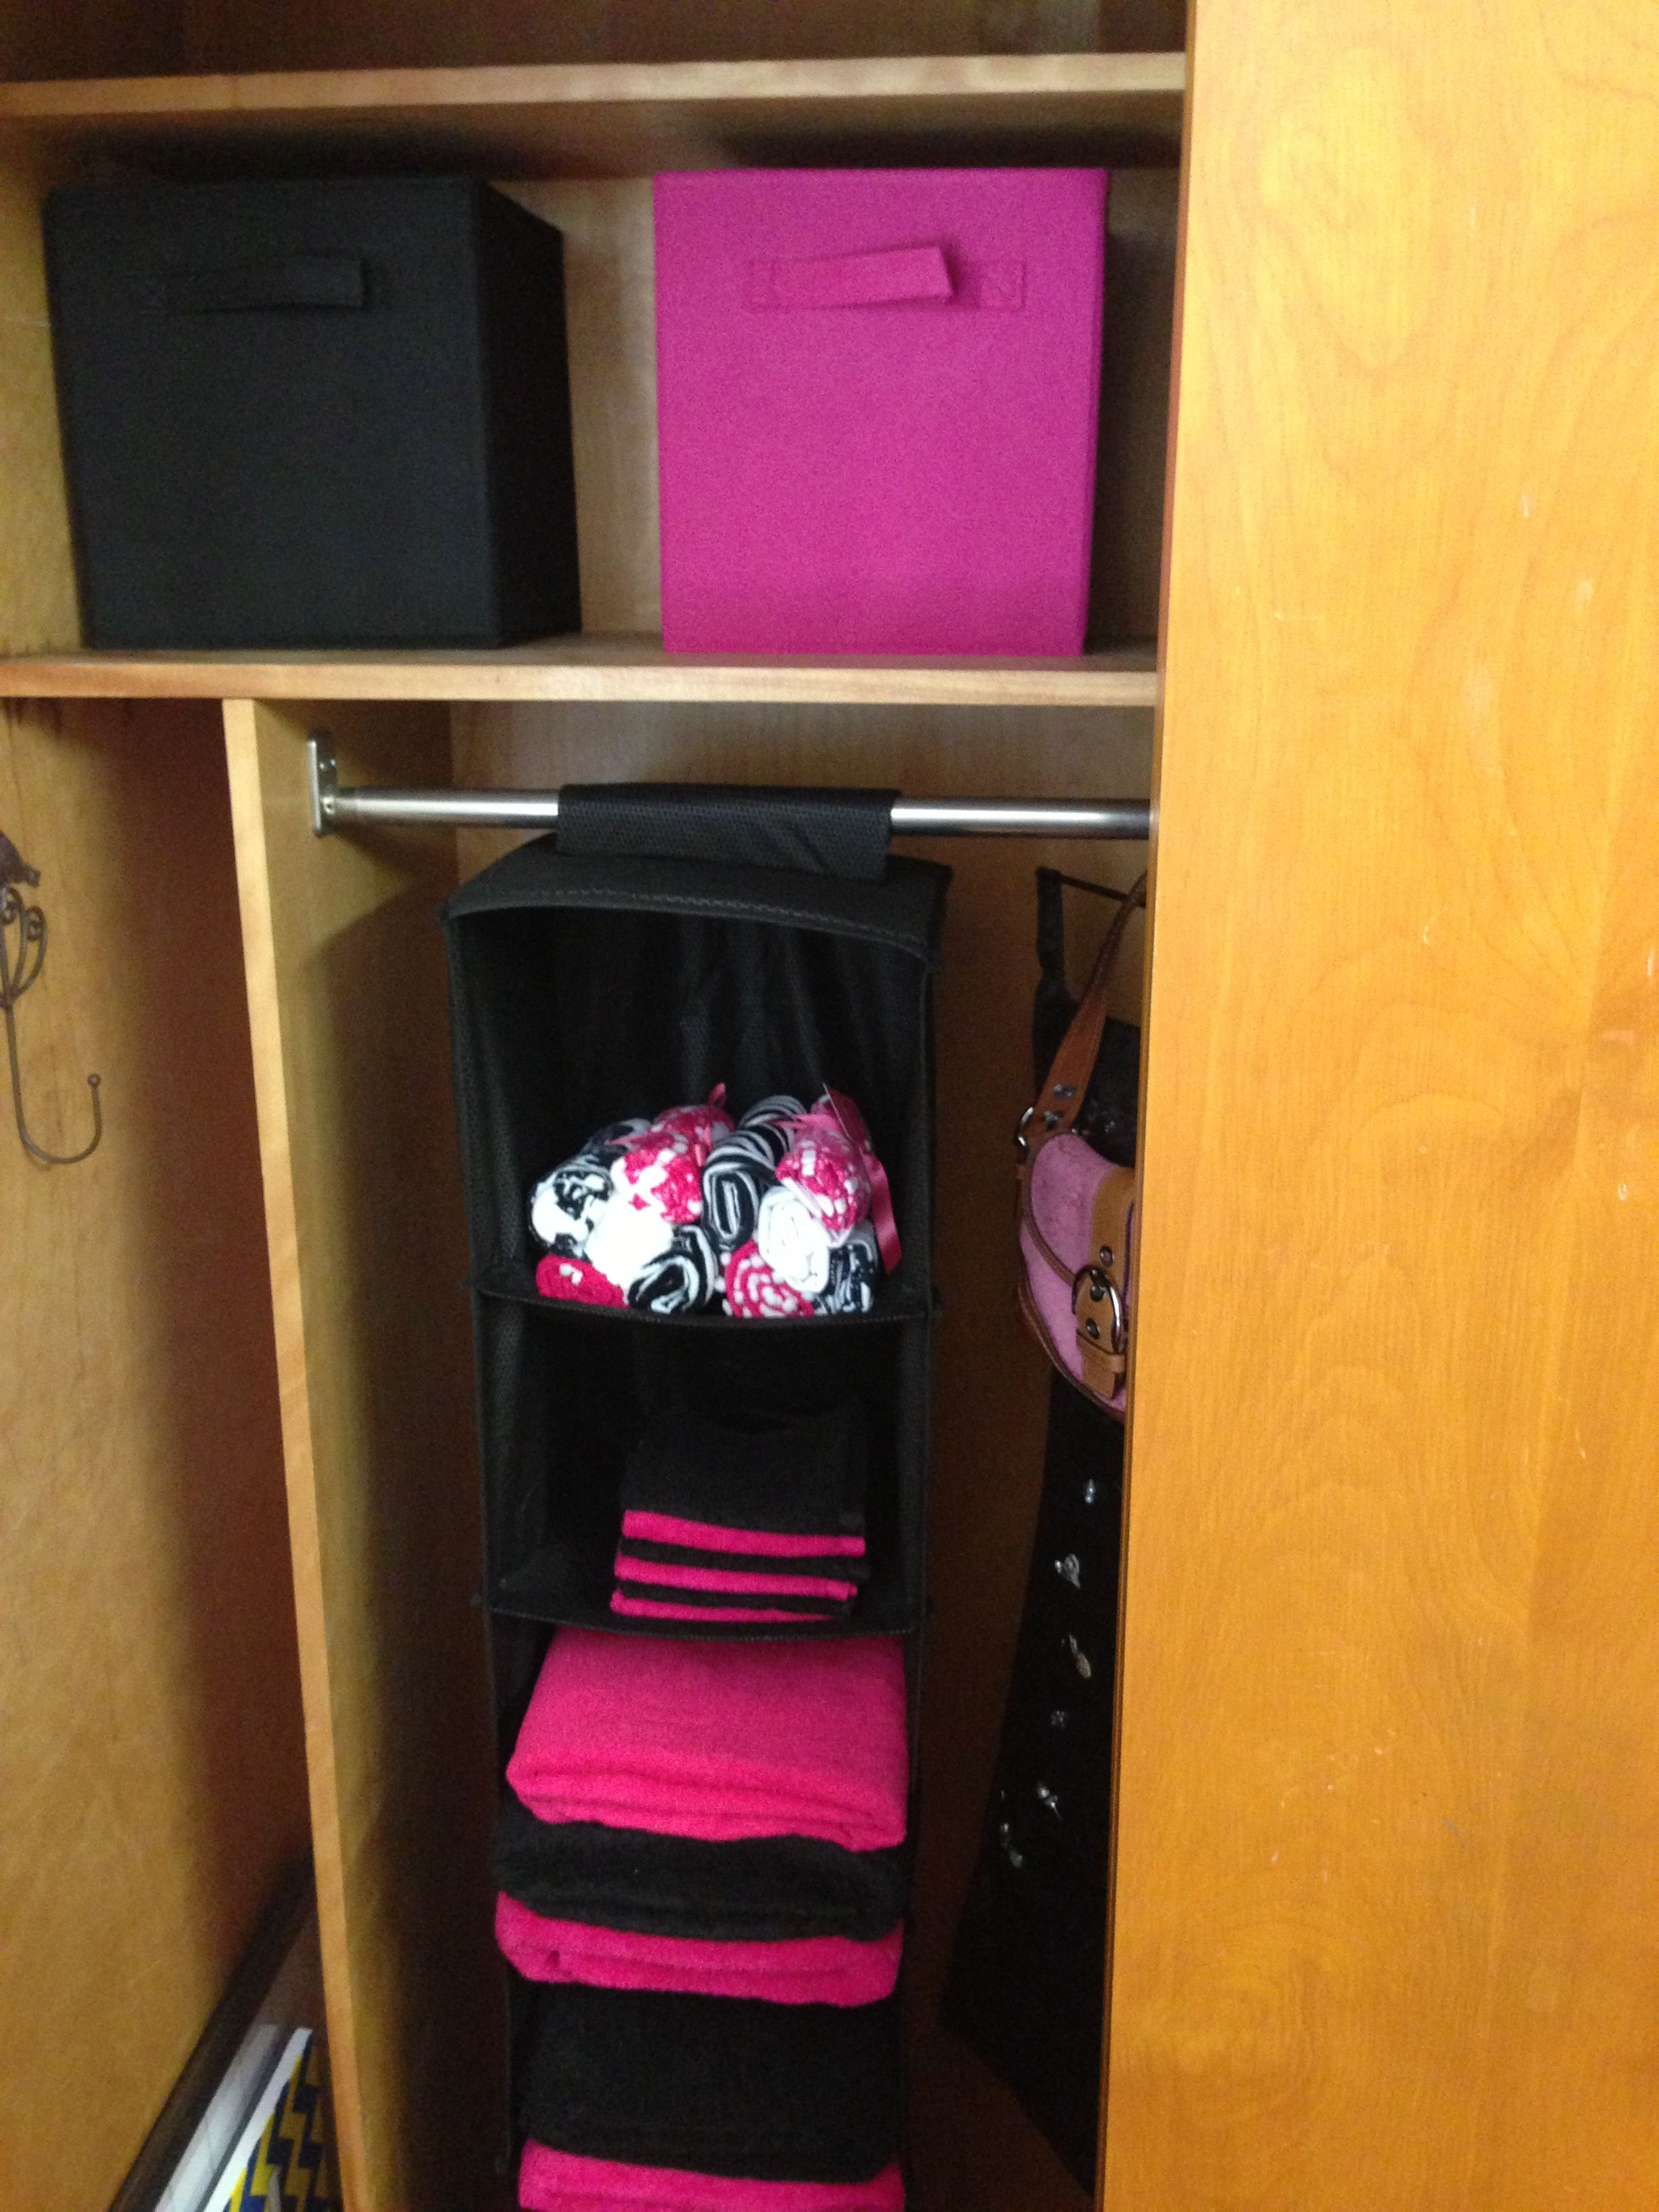 College dorm closet organization ideas! #UCO